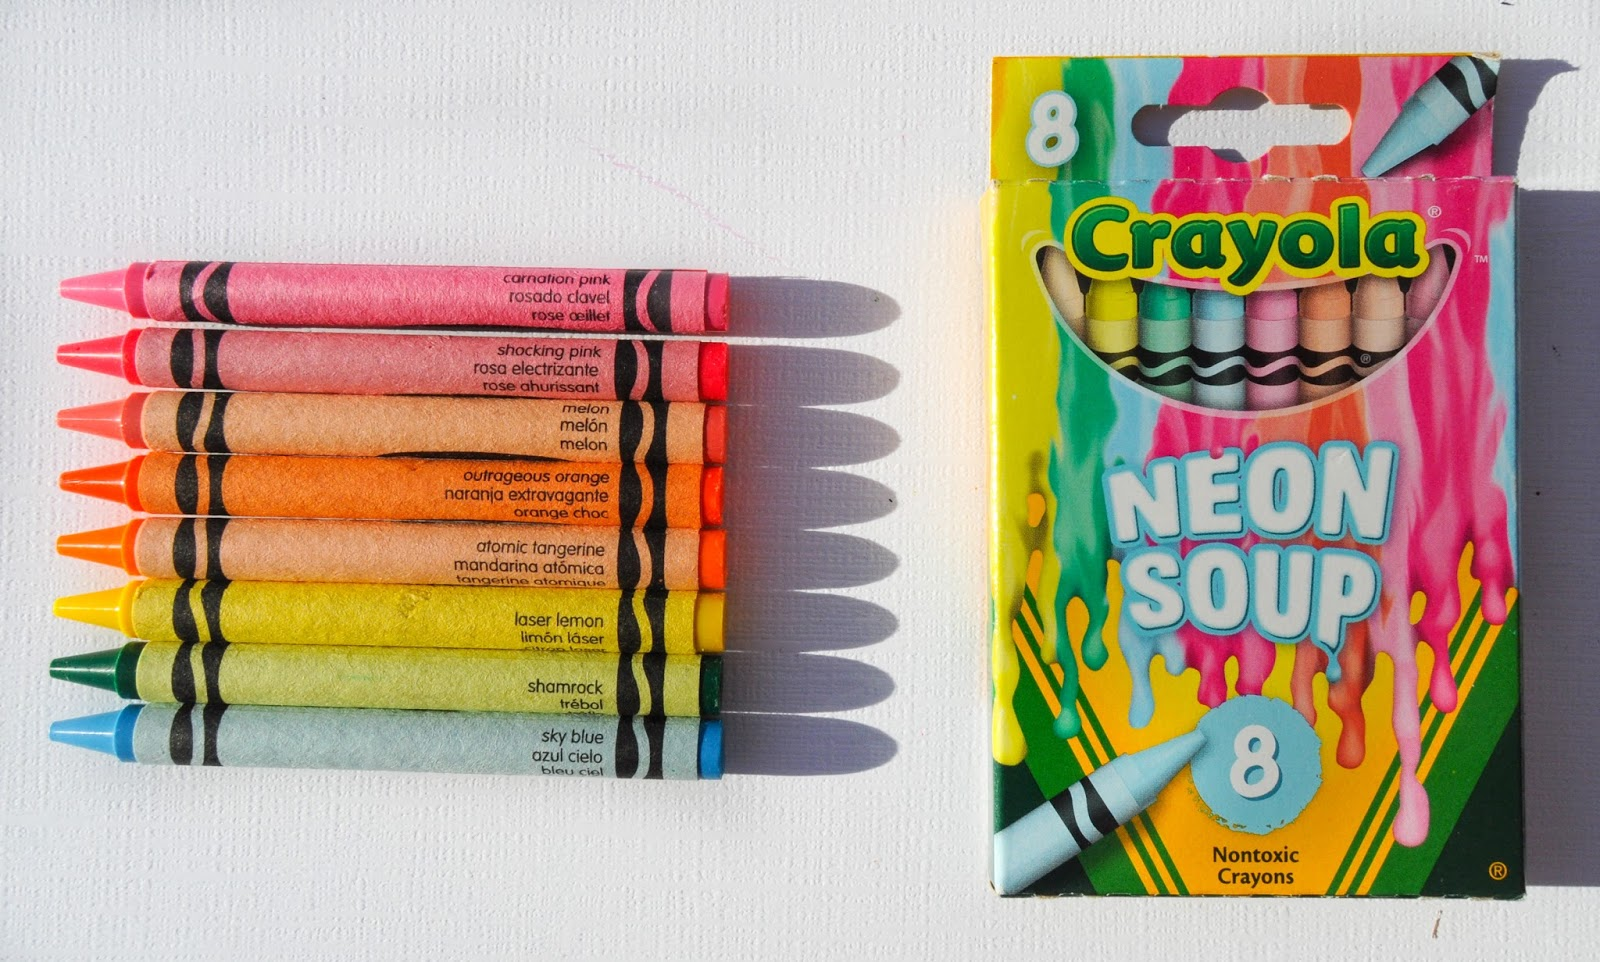 8 Count Crayola Meltdown Crayons What S Inside The Box